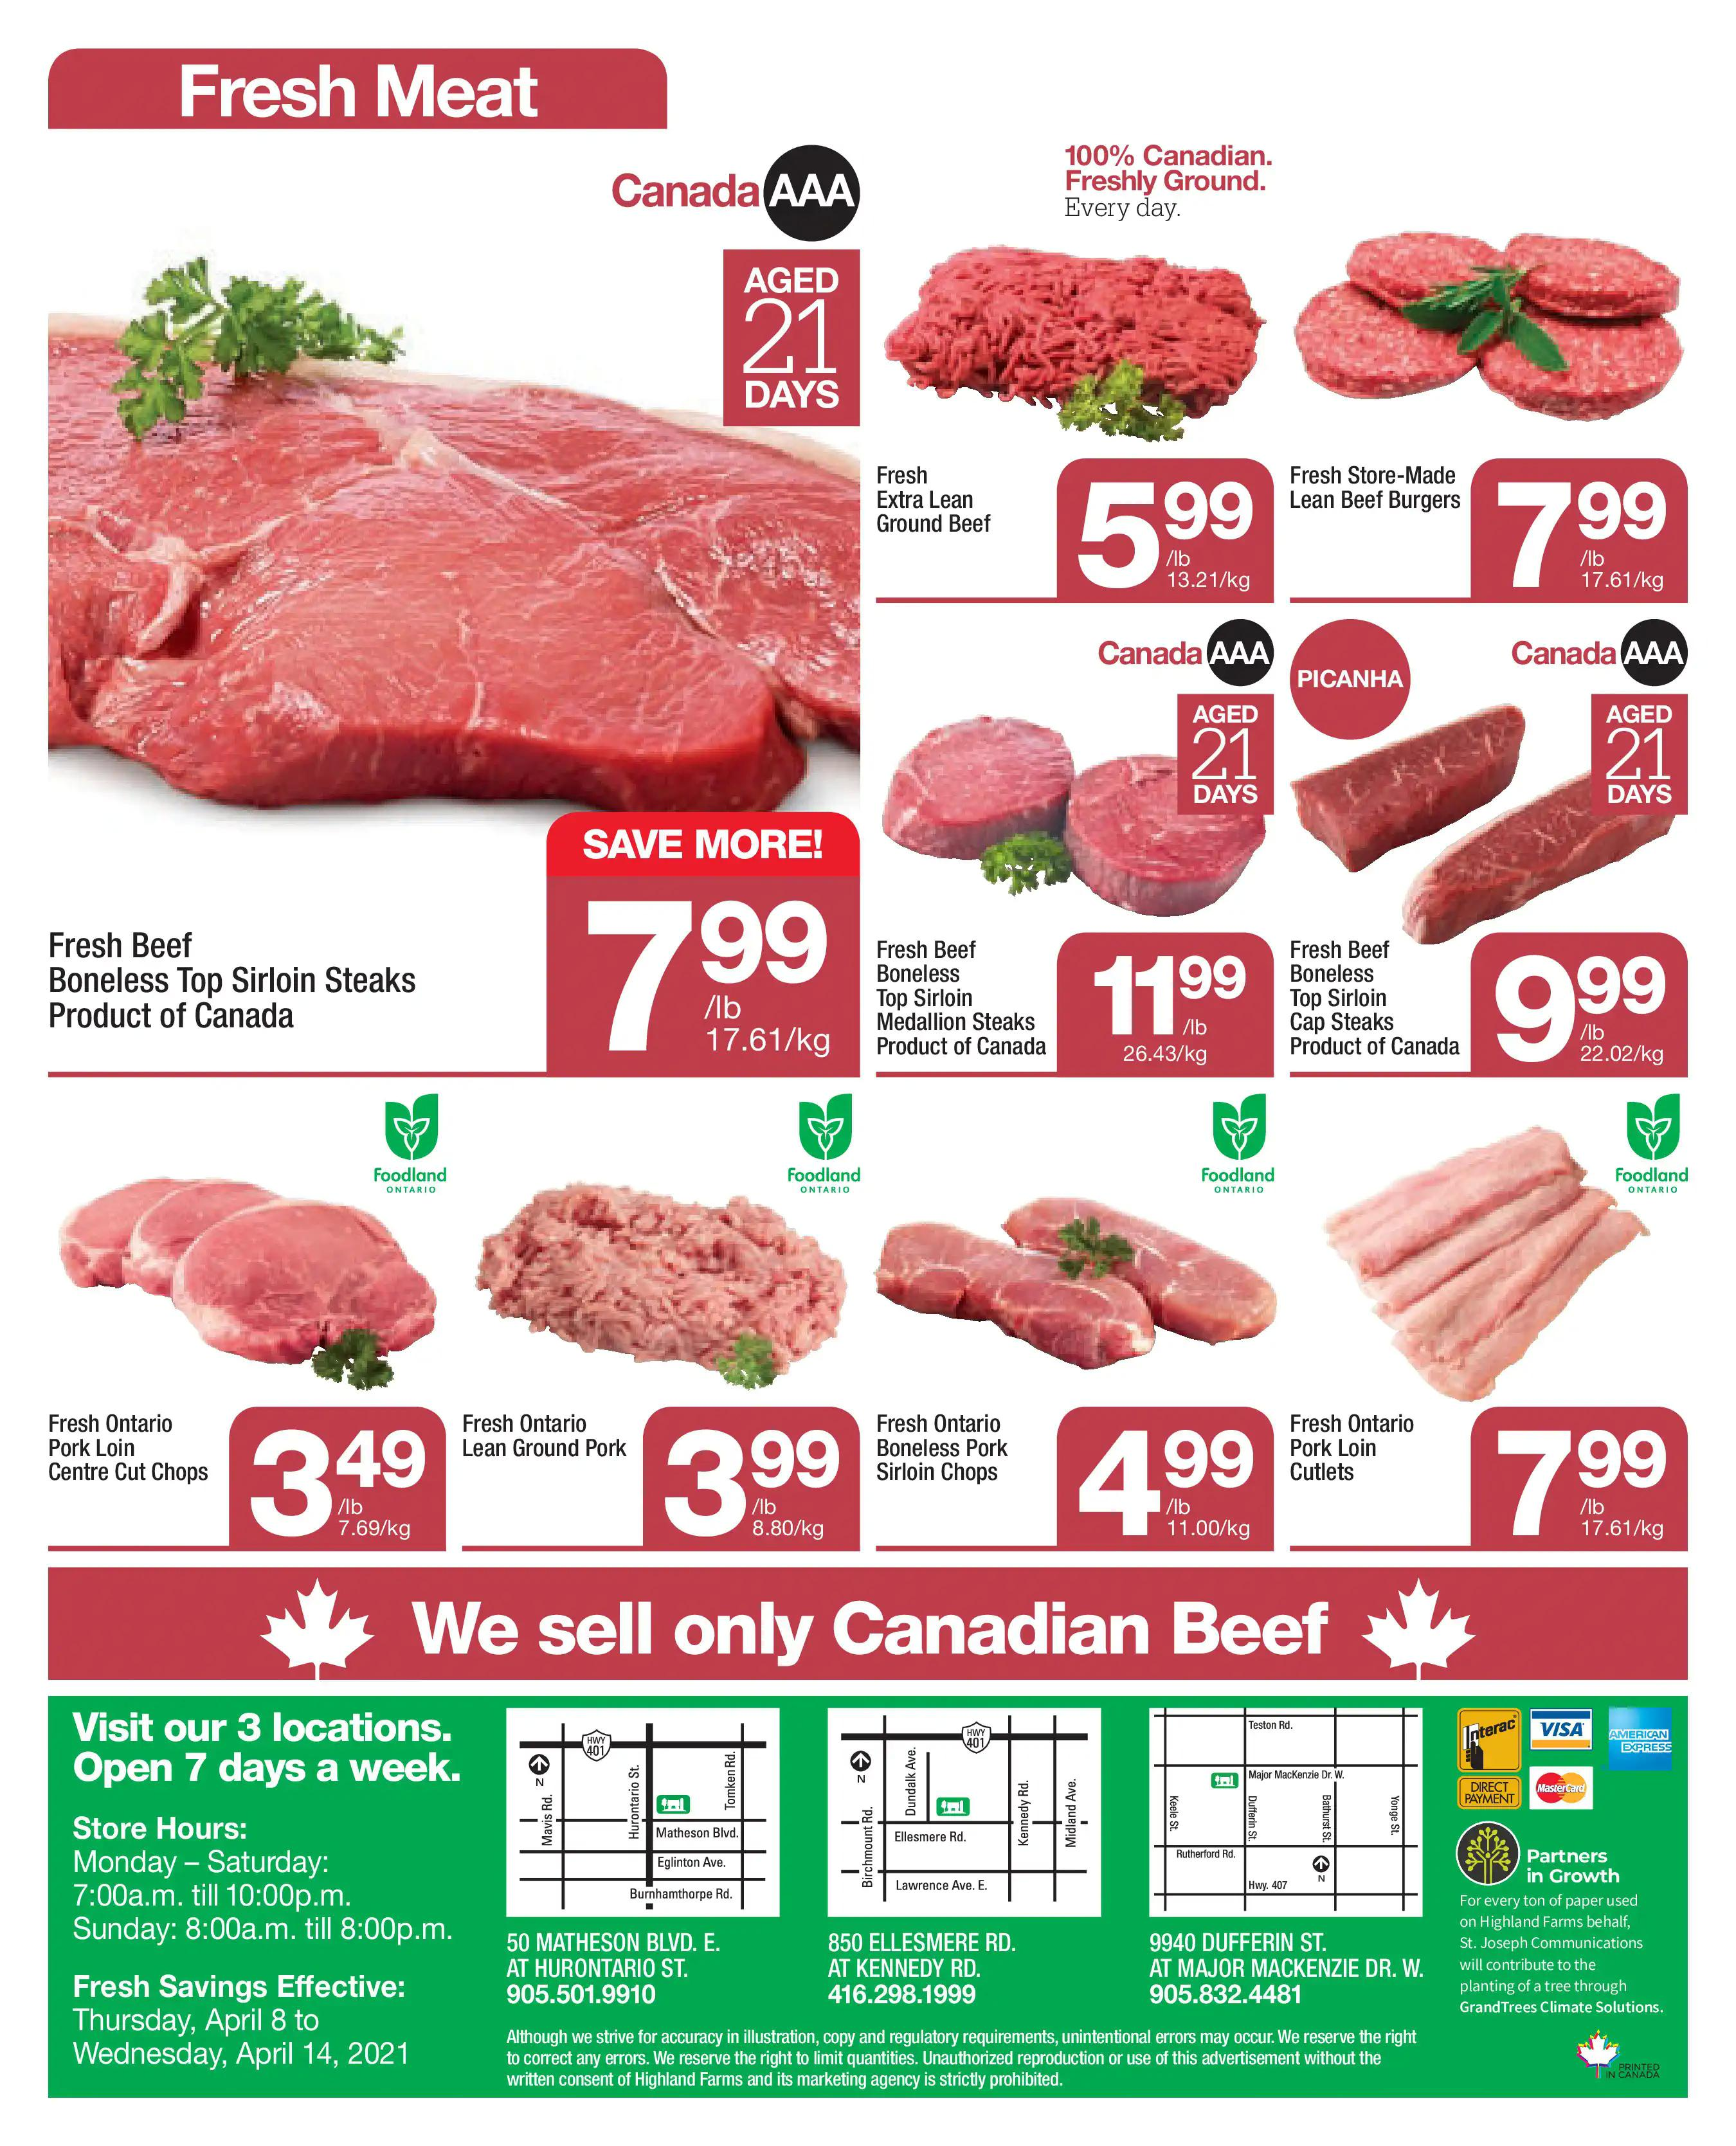 Highland Farms - Weekly Flyer Specials - Page 8